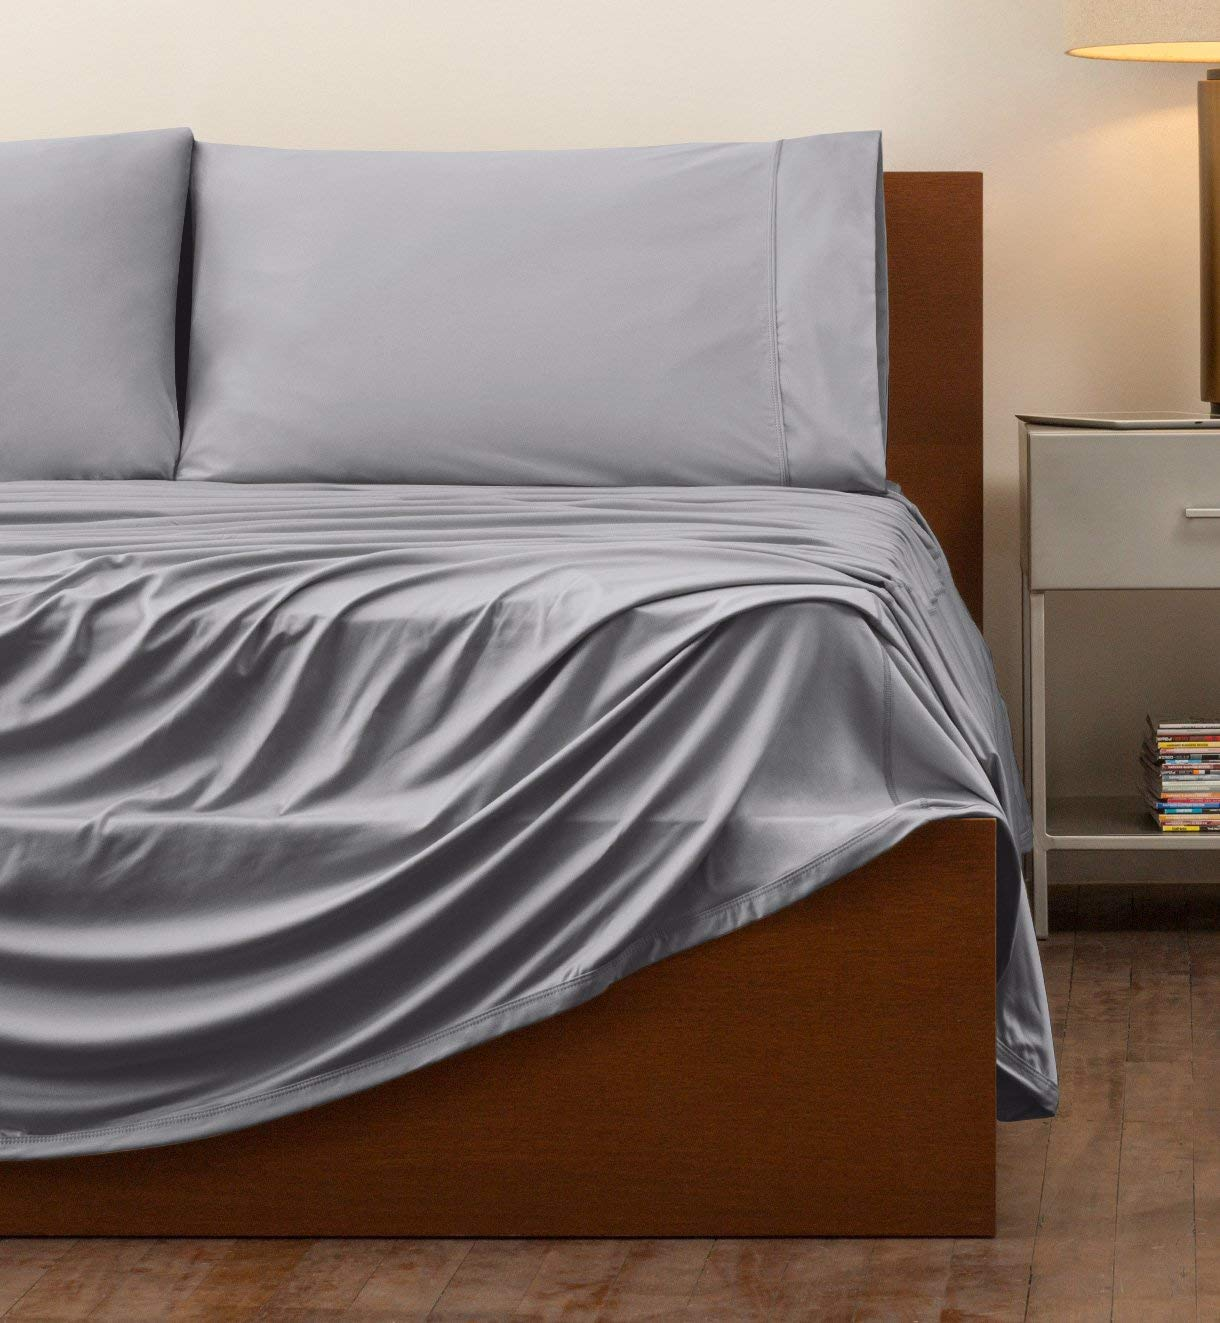 Click to Buy SHEEX Original Performance Sheet Set - Best Sheets For Sweaty Sleepers